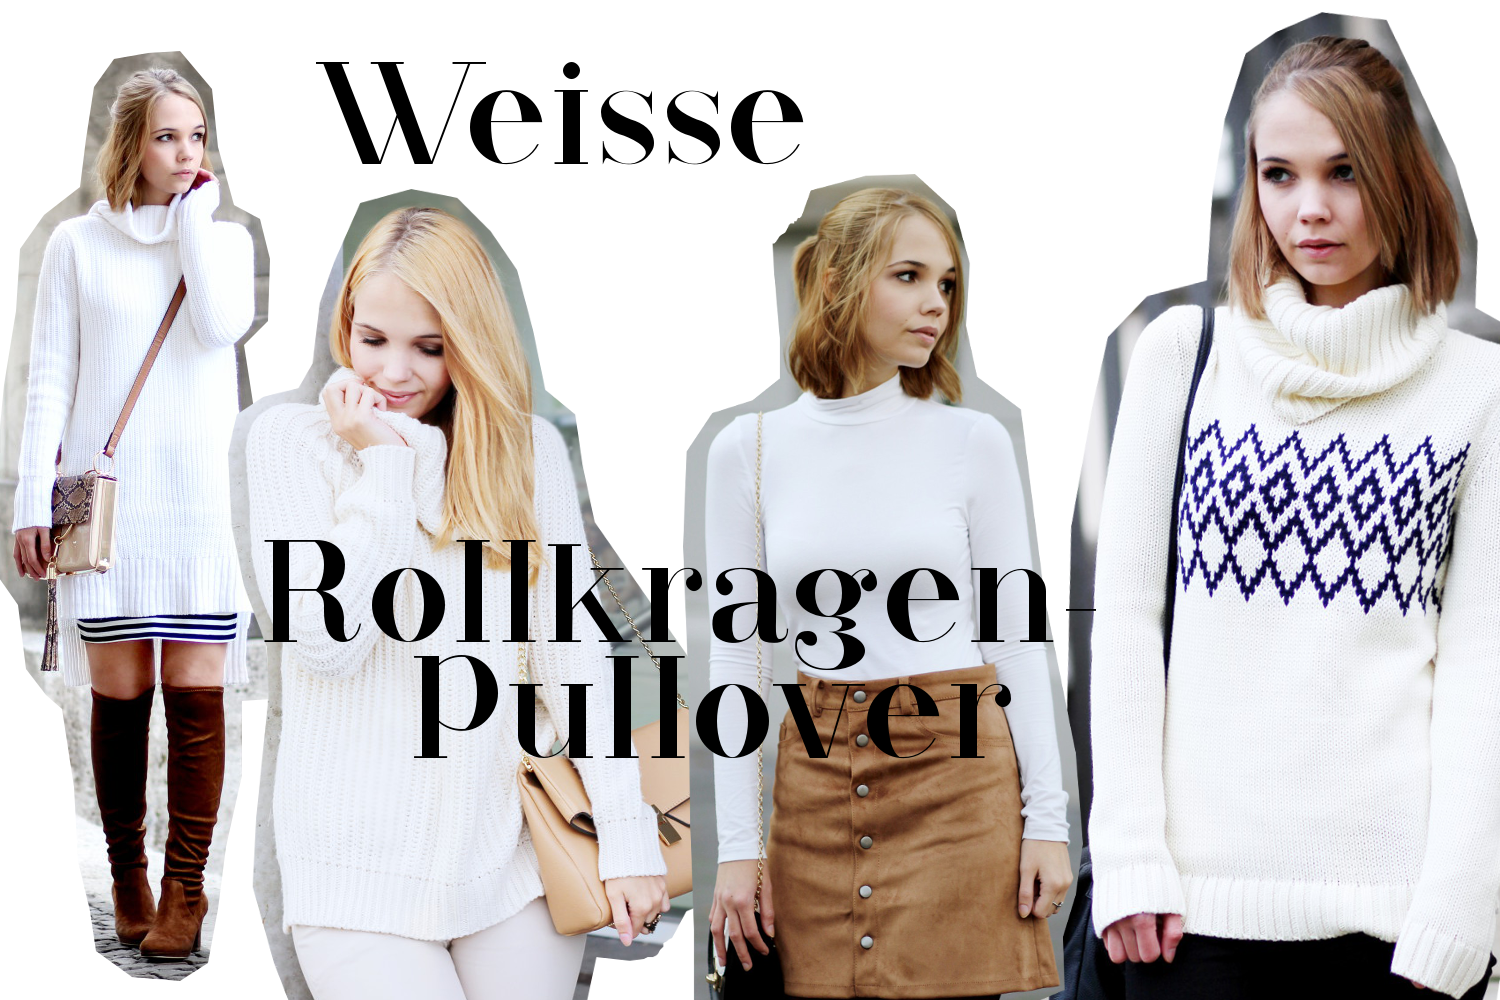 bezaubernde nana, bezauberndenana.de, fashionblog, modeblog, germany, deutschland, mode favoriten 2015, trends 2015, fashion, mode, weiße rollkragenpullover